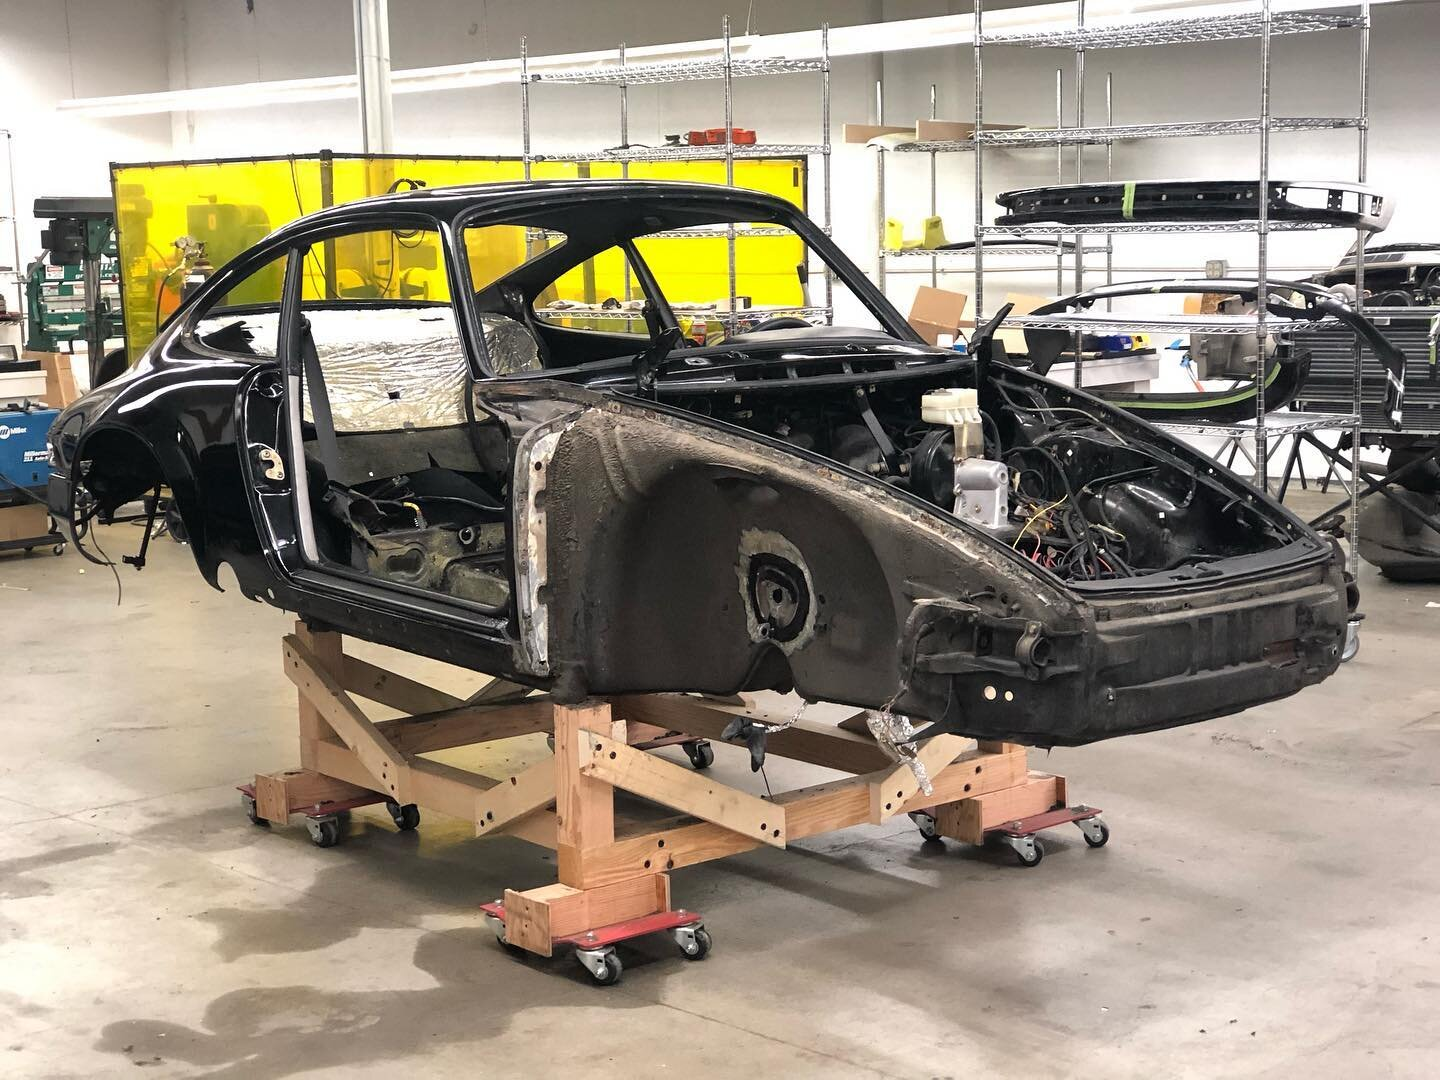 911 Ready For Paint.jpg